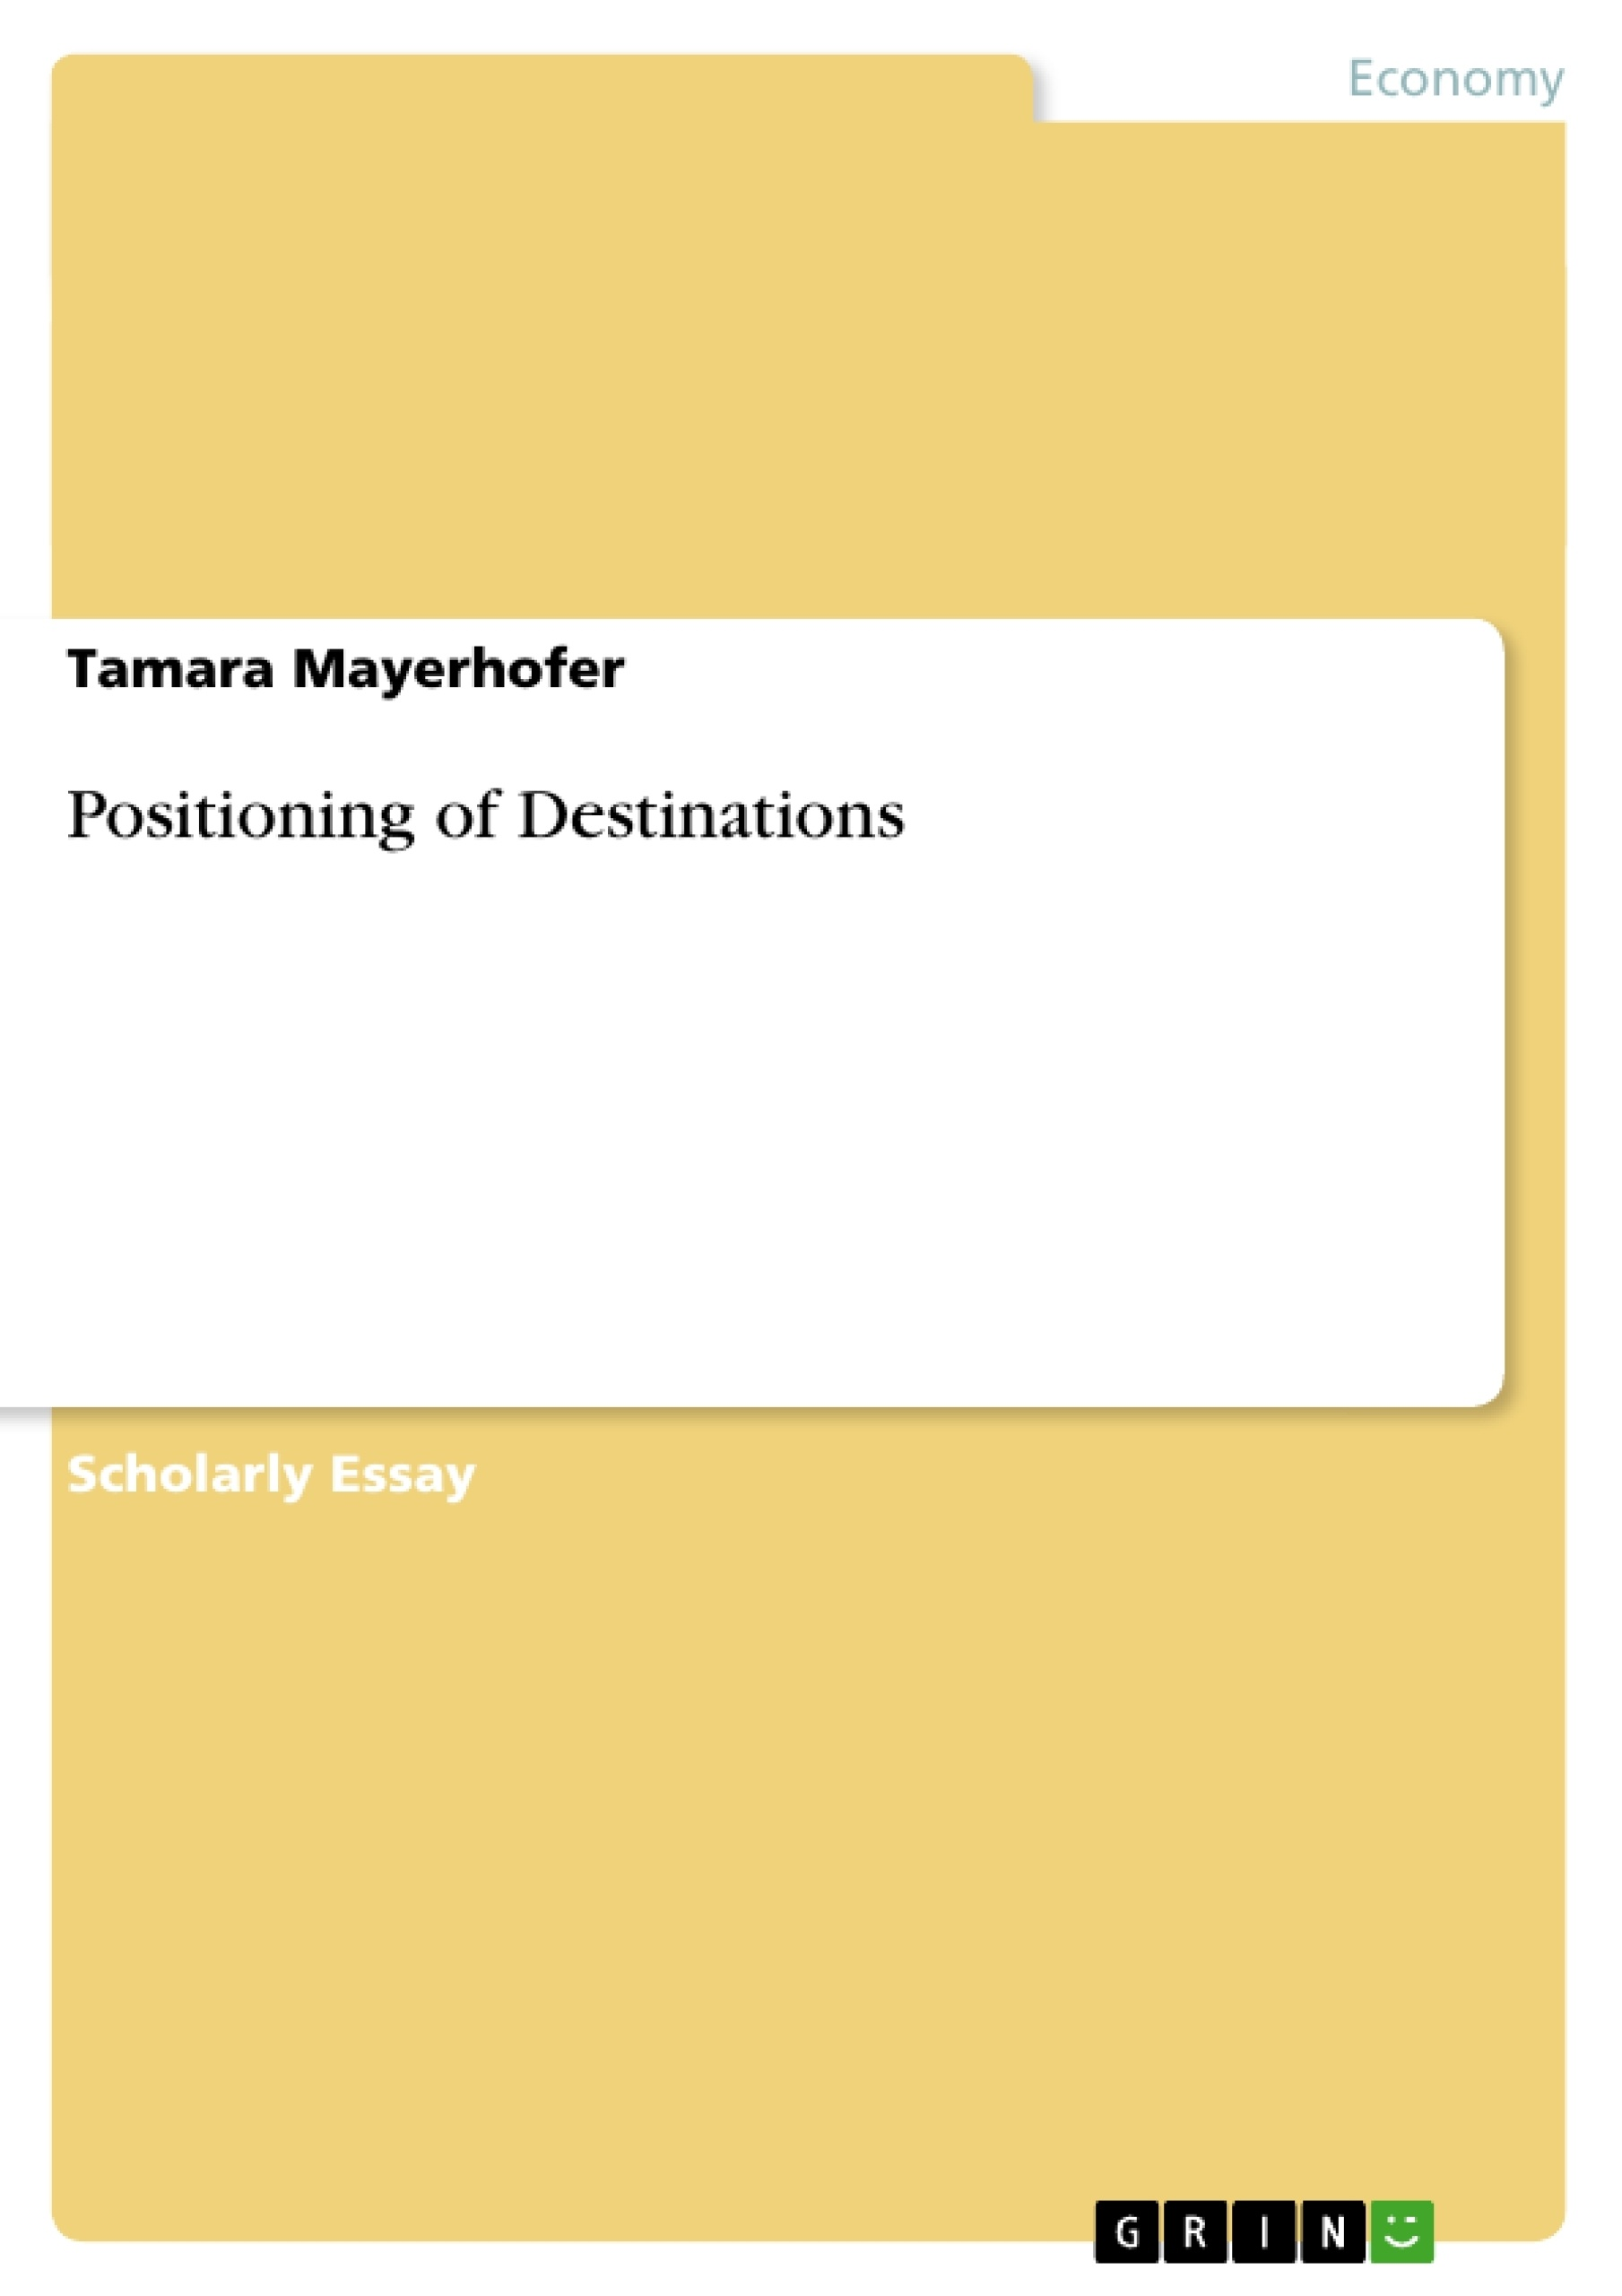 Title: Positioning of Destinations